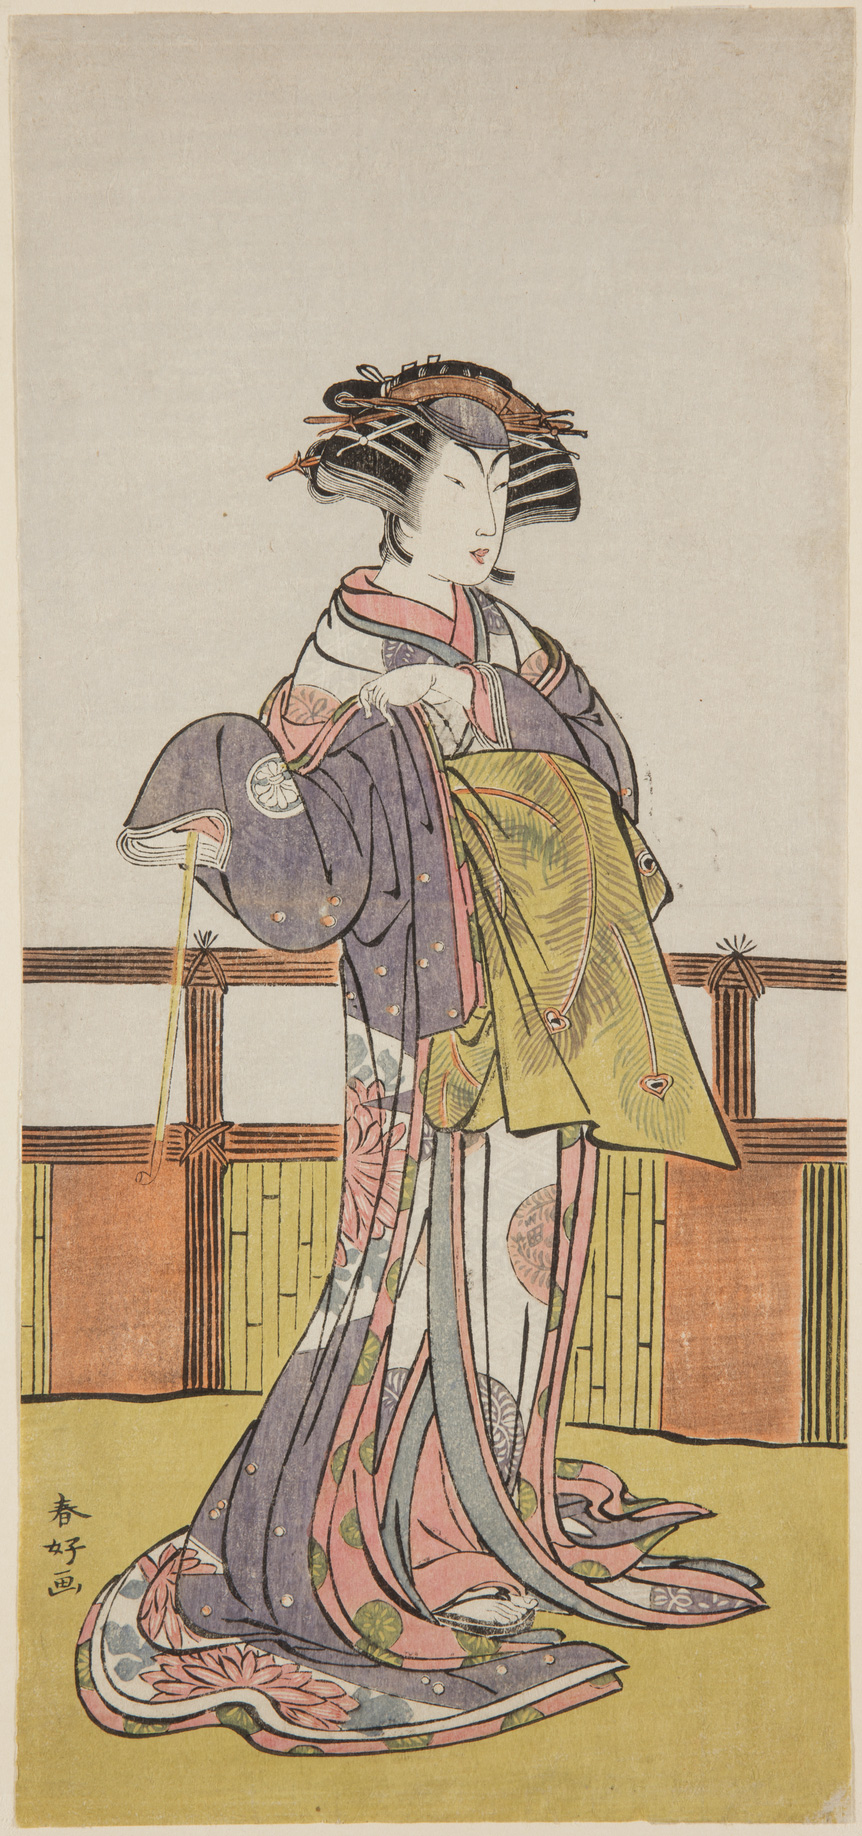 A Japanese print of an actor standing with one hand holding the sleeve of the long flowing traditional robes.